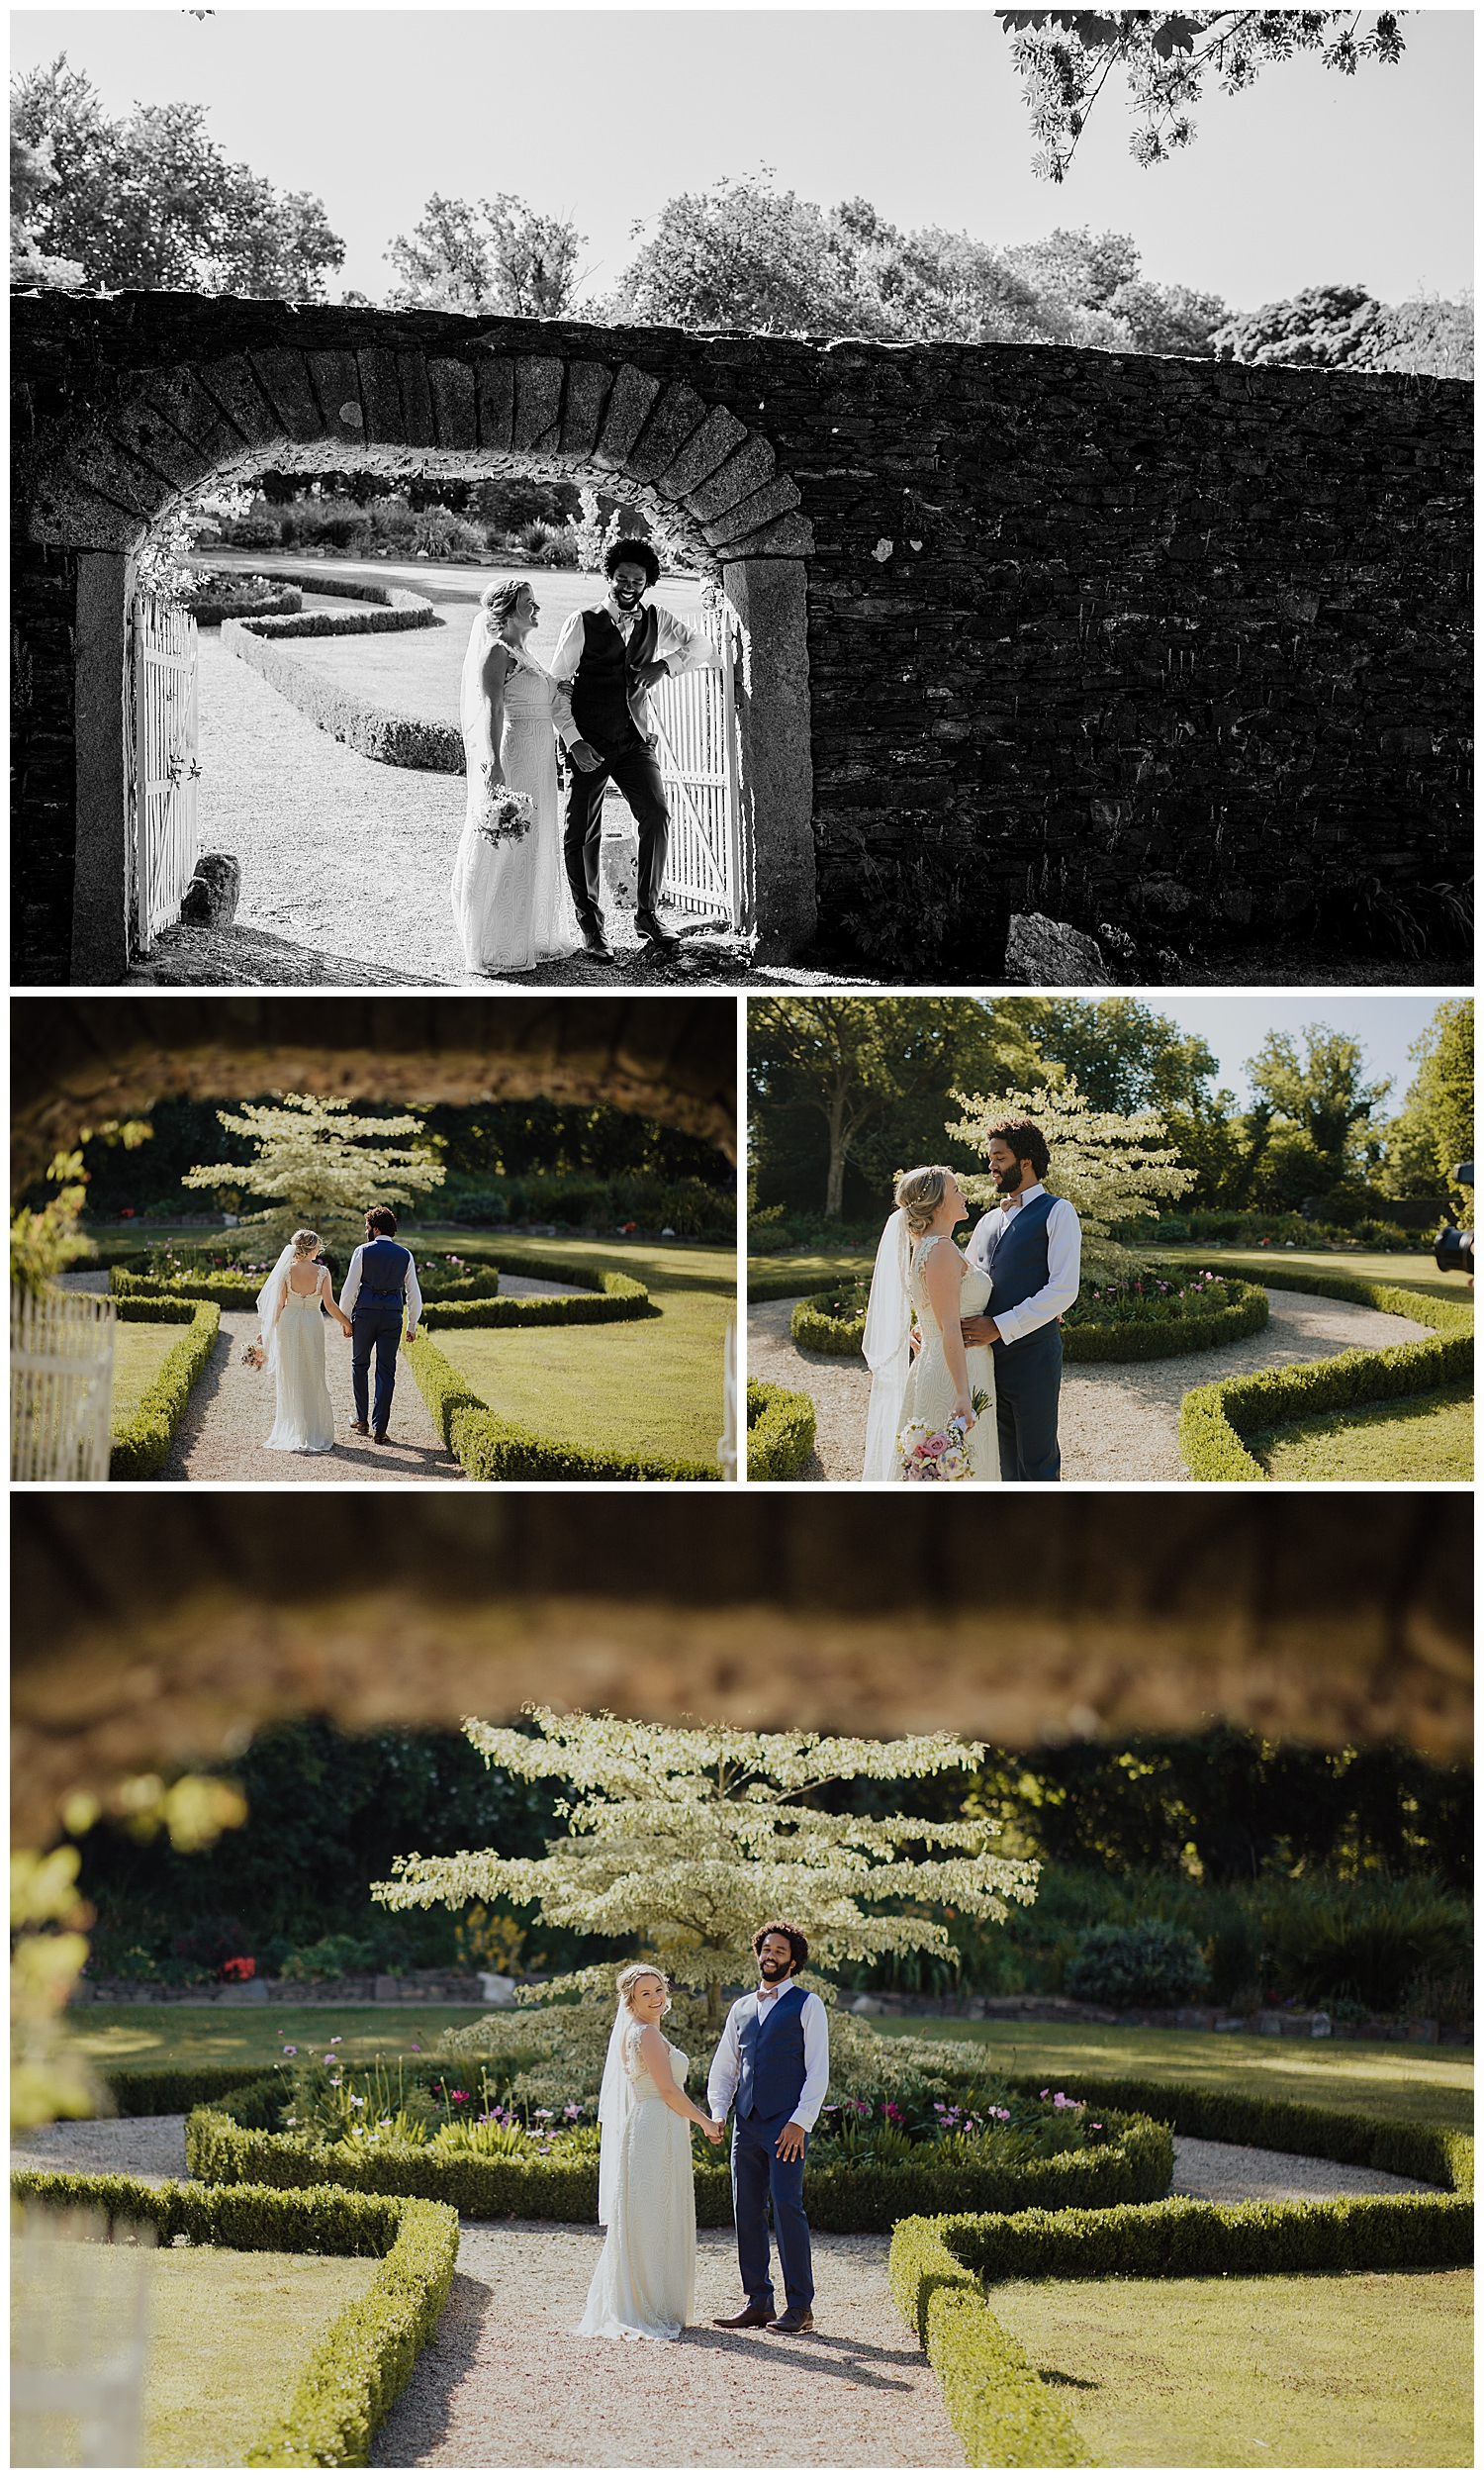 j&r_ballybeg_house_wedding_photographer_livia_figueiredo_498.jpg